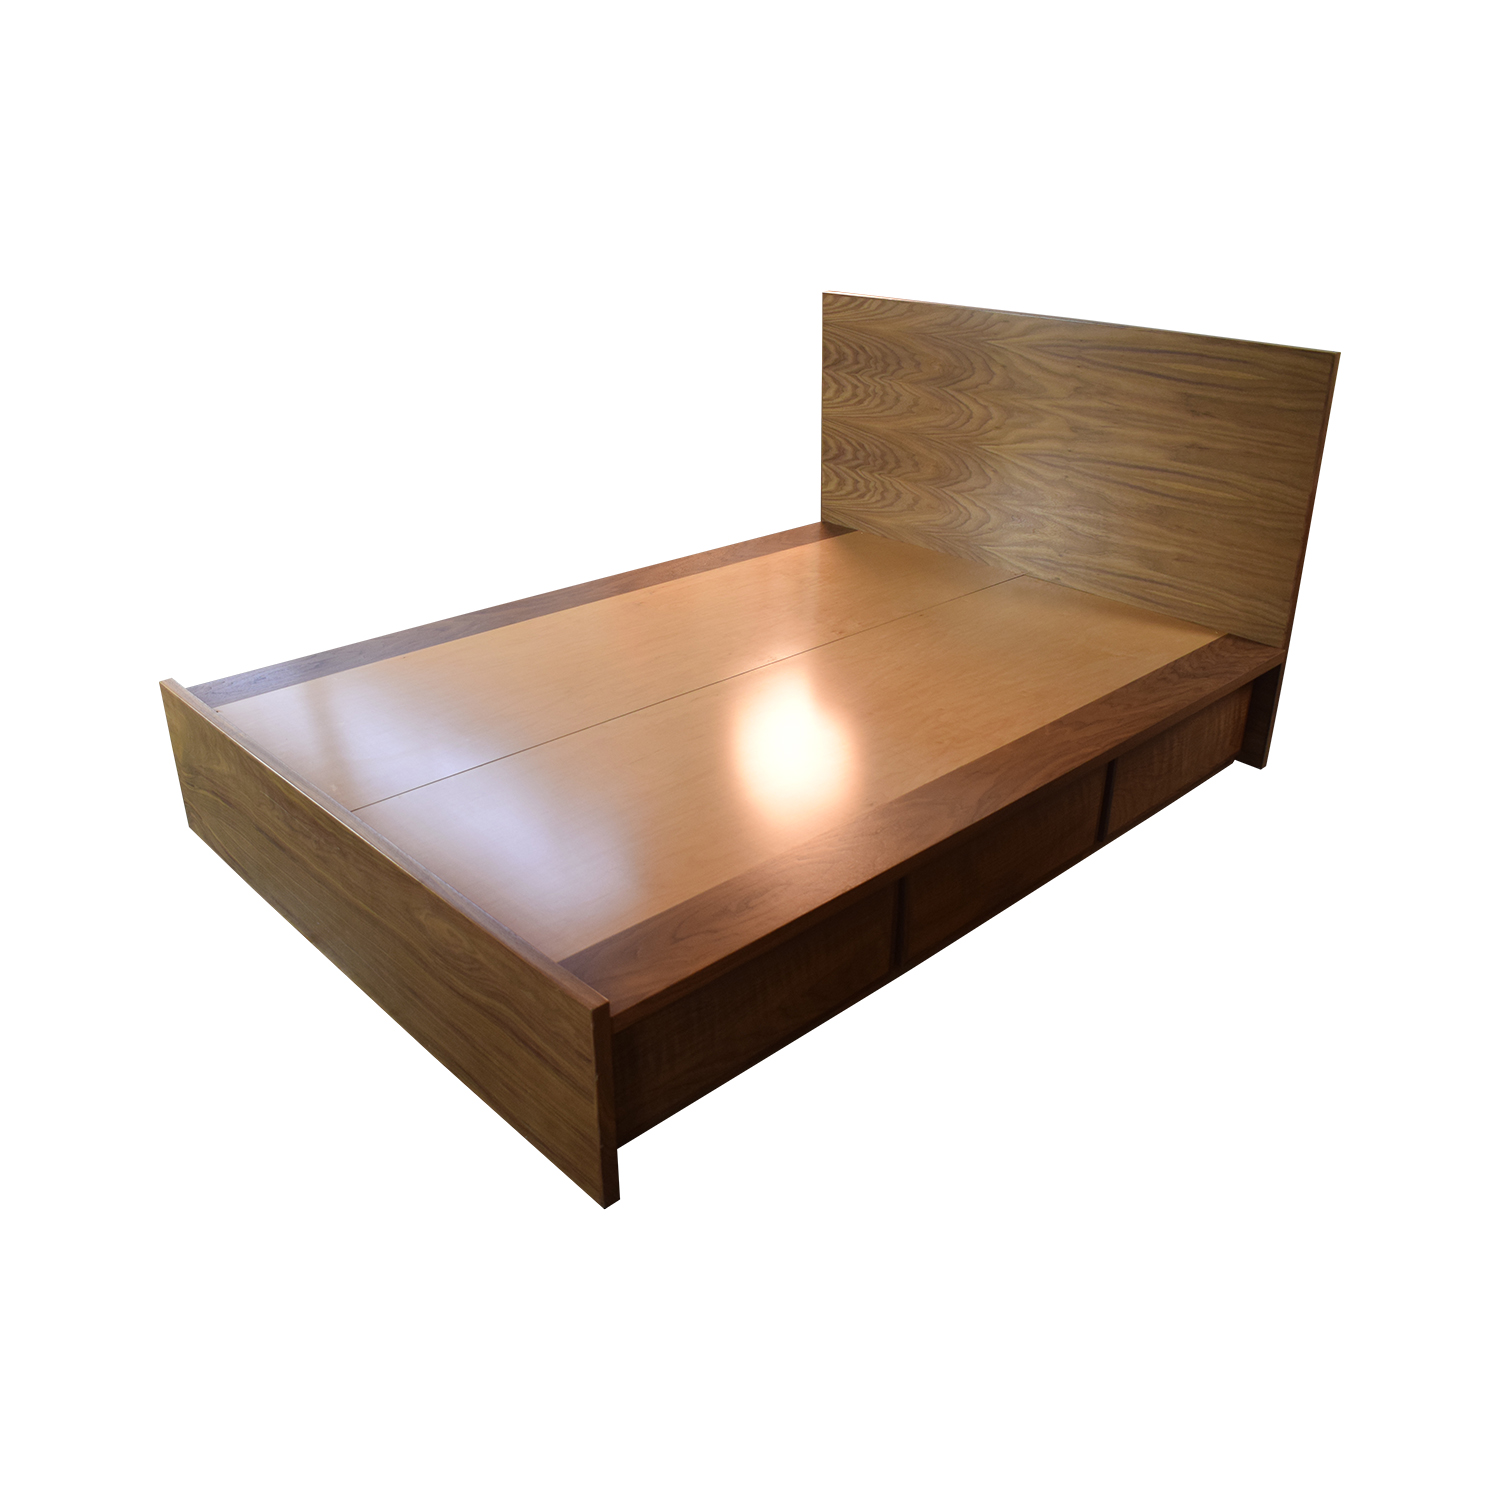 Urbangreen Furniture Urbangreen Furniture Thompson Queen Storage Bed Six Drawer with Headboard nj